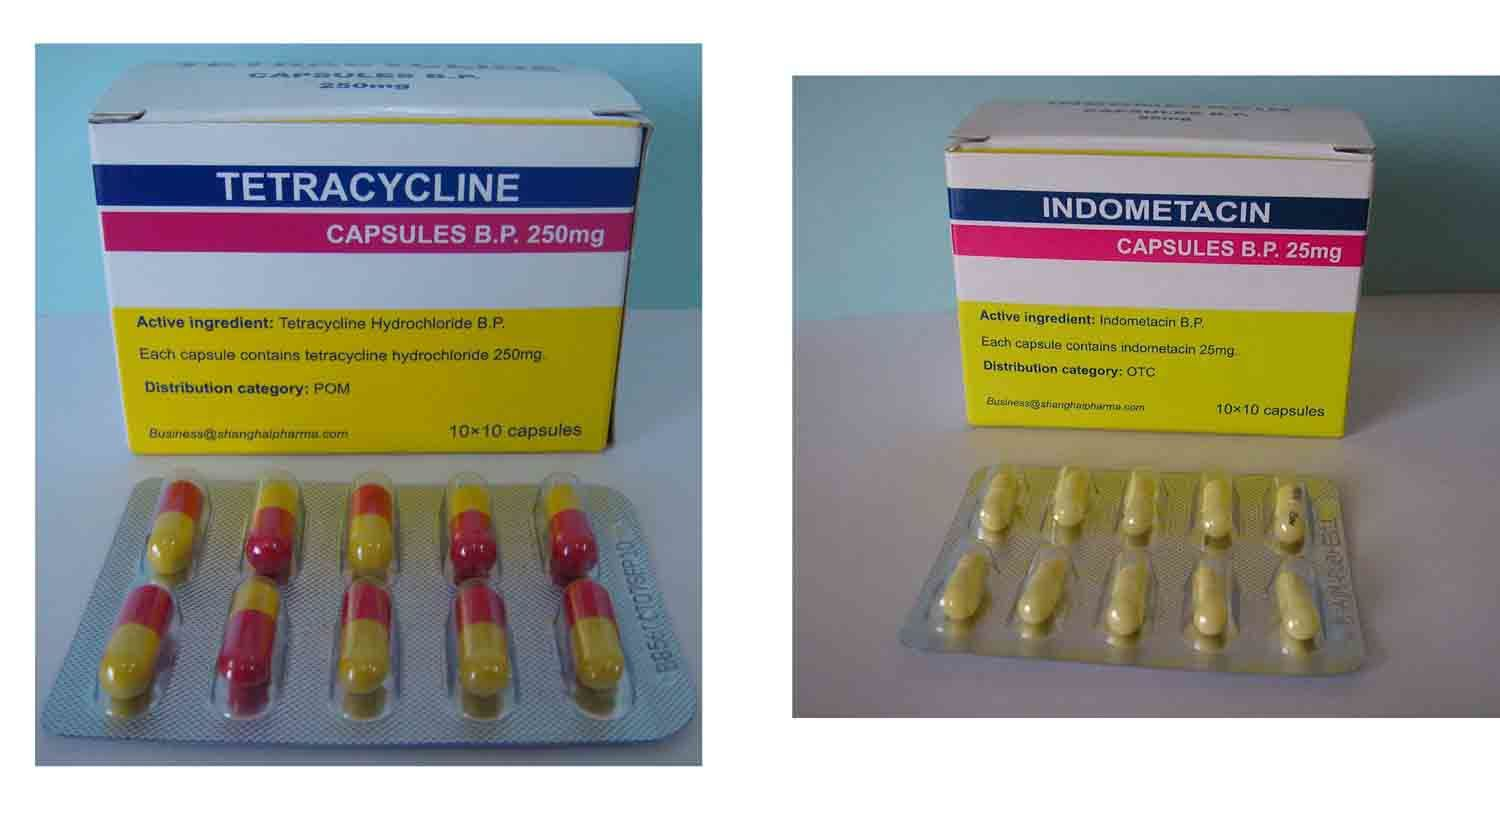 doxycycline 100mg for